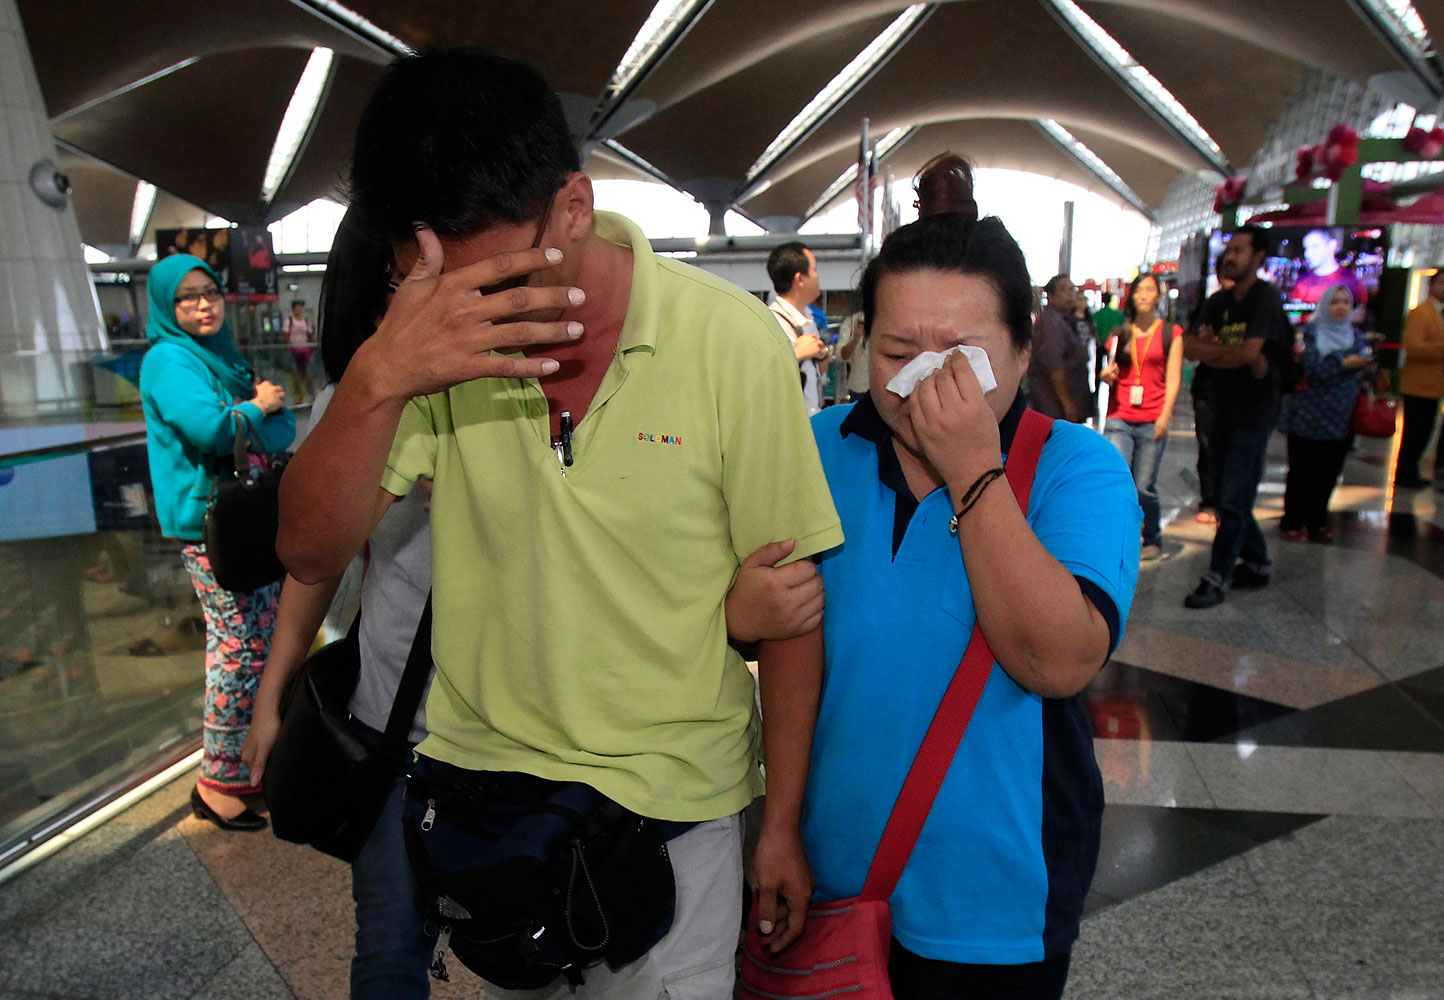 A woman wipes her tears after walking out from the reception center and holding area for family and friends of passengers aboard the missing plane, at Kuala Lumpur International Airport in Sepang, outside Kuala Lumpur, Malaysia, March 8, 2014.